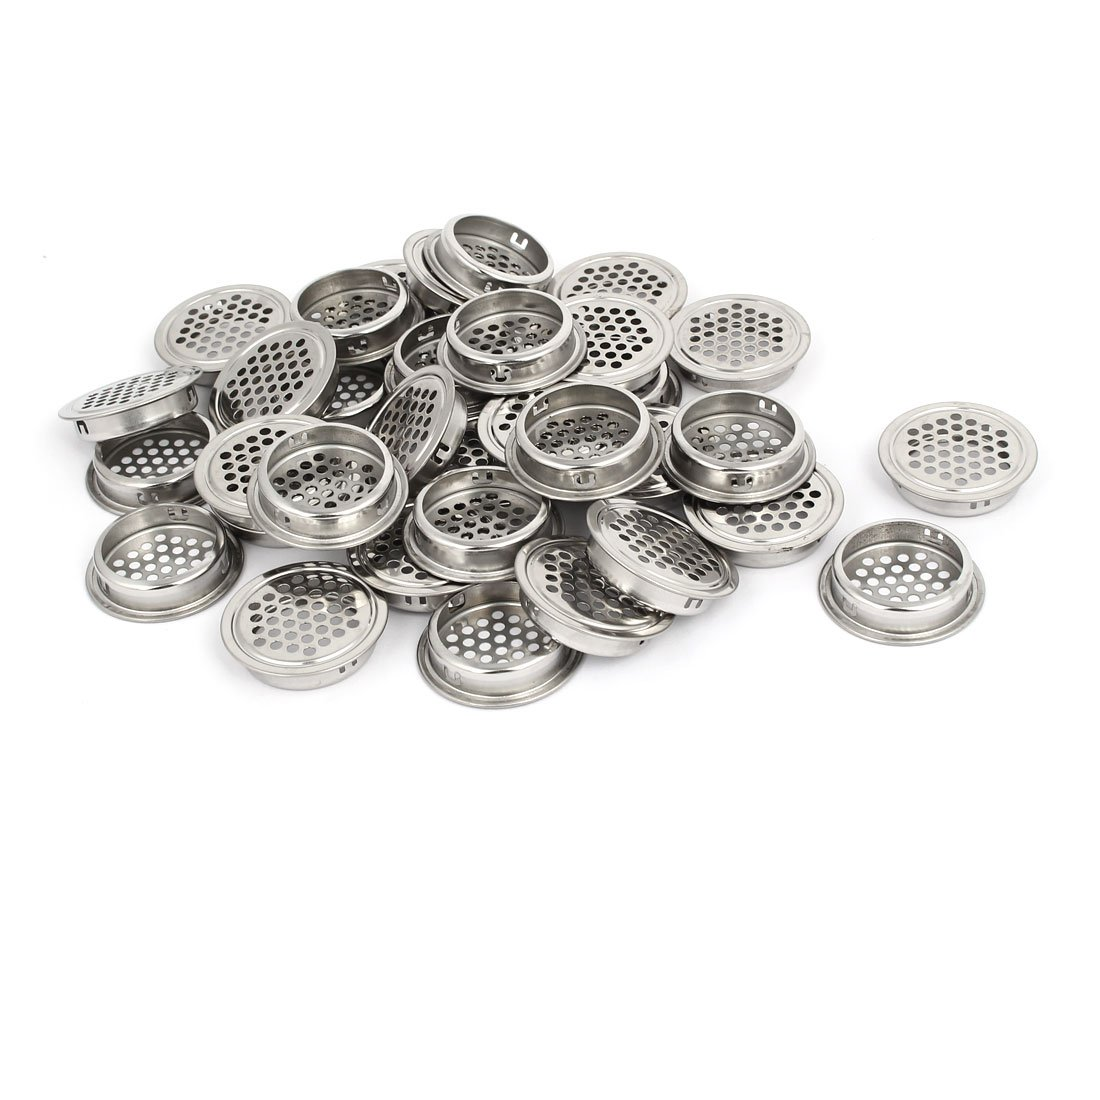 uxcell 35mm Bottom Dia Stainless Steel Round Shaped Mesh Hole Air Vent Louver 35pcs